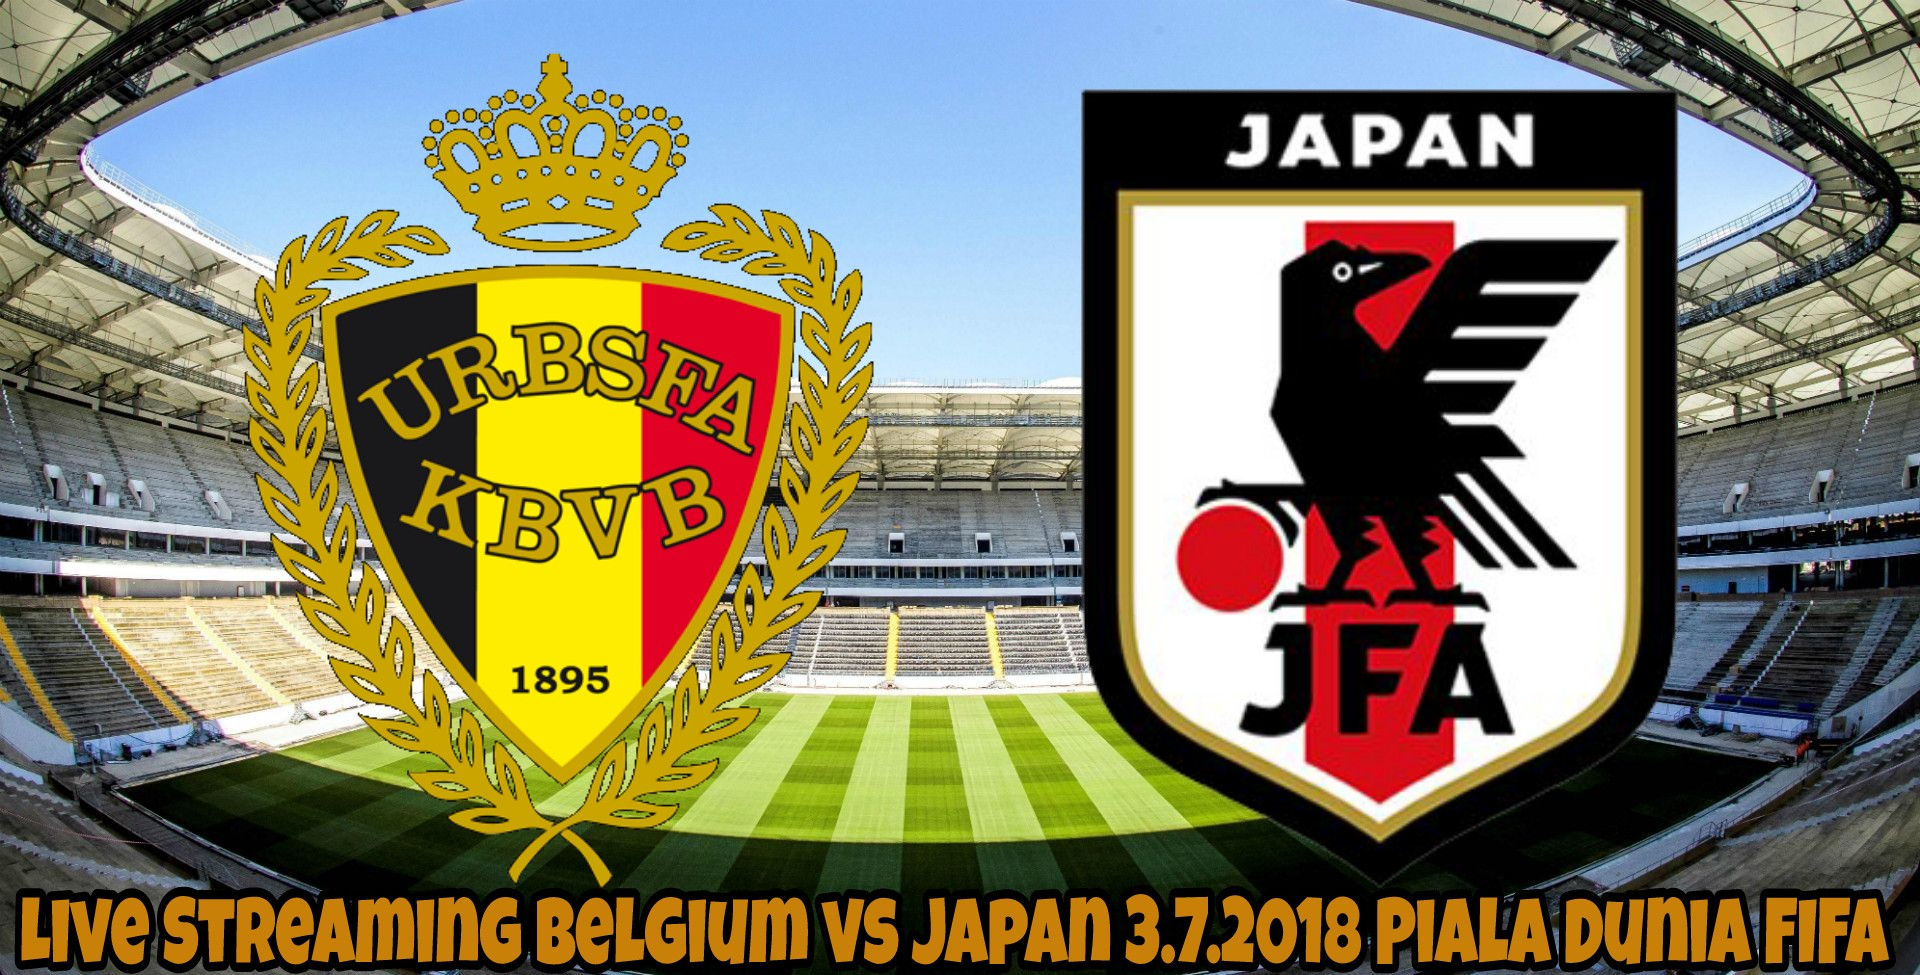 Live Streaming Belgium vs Japan 3.7.2018 Piala Dunia FIFA